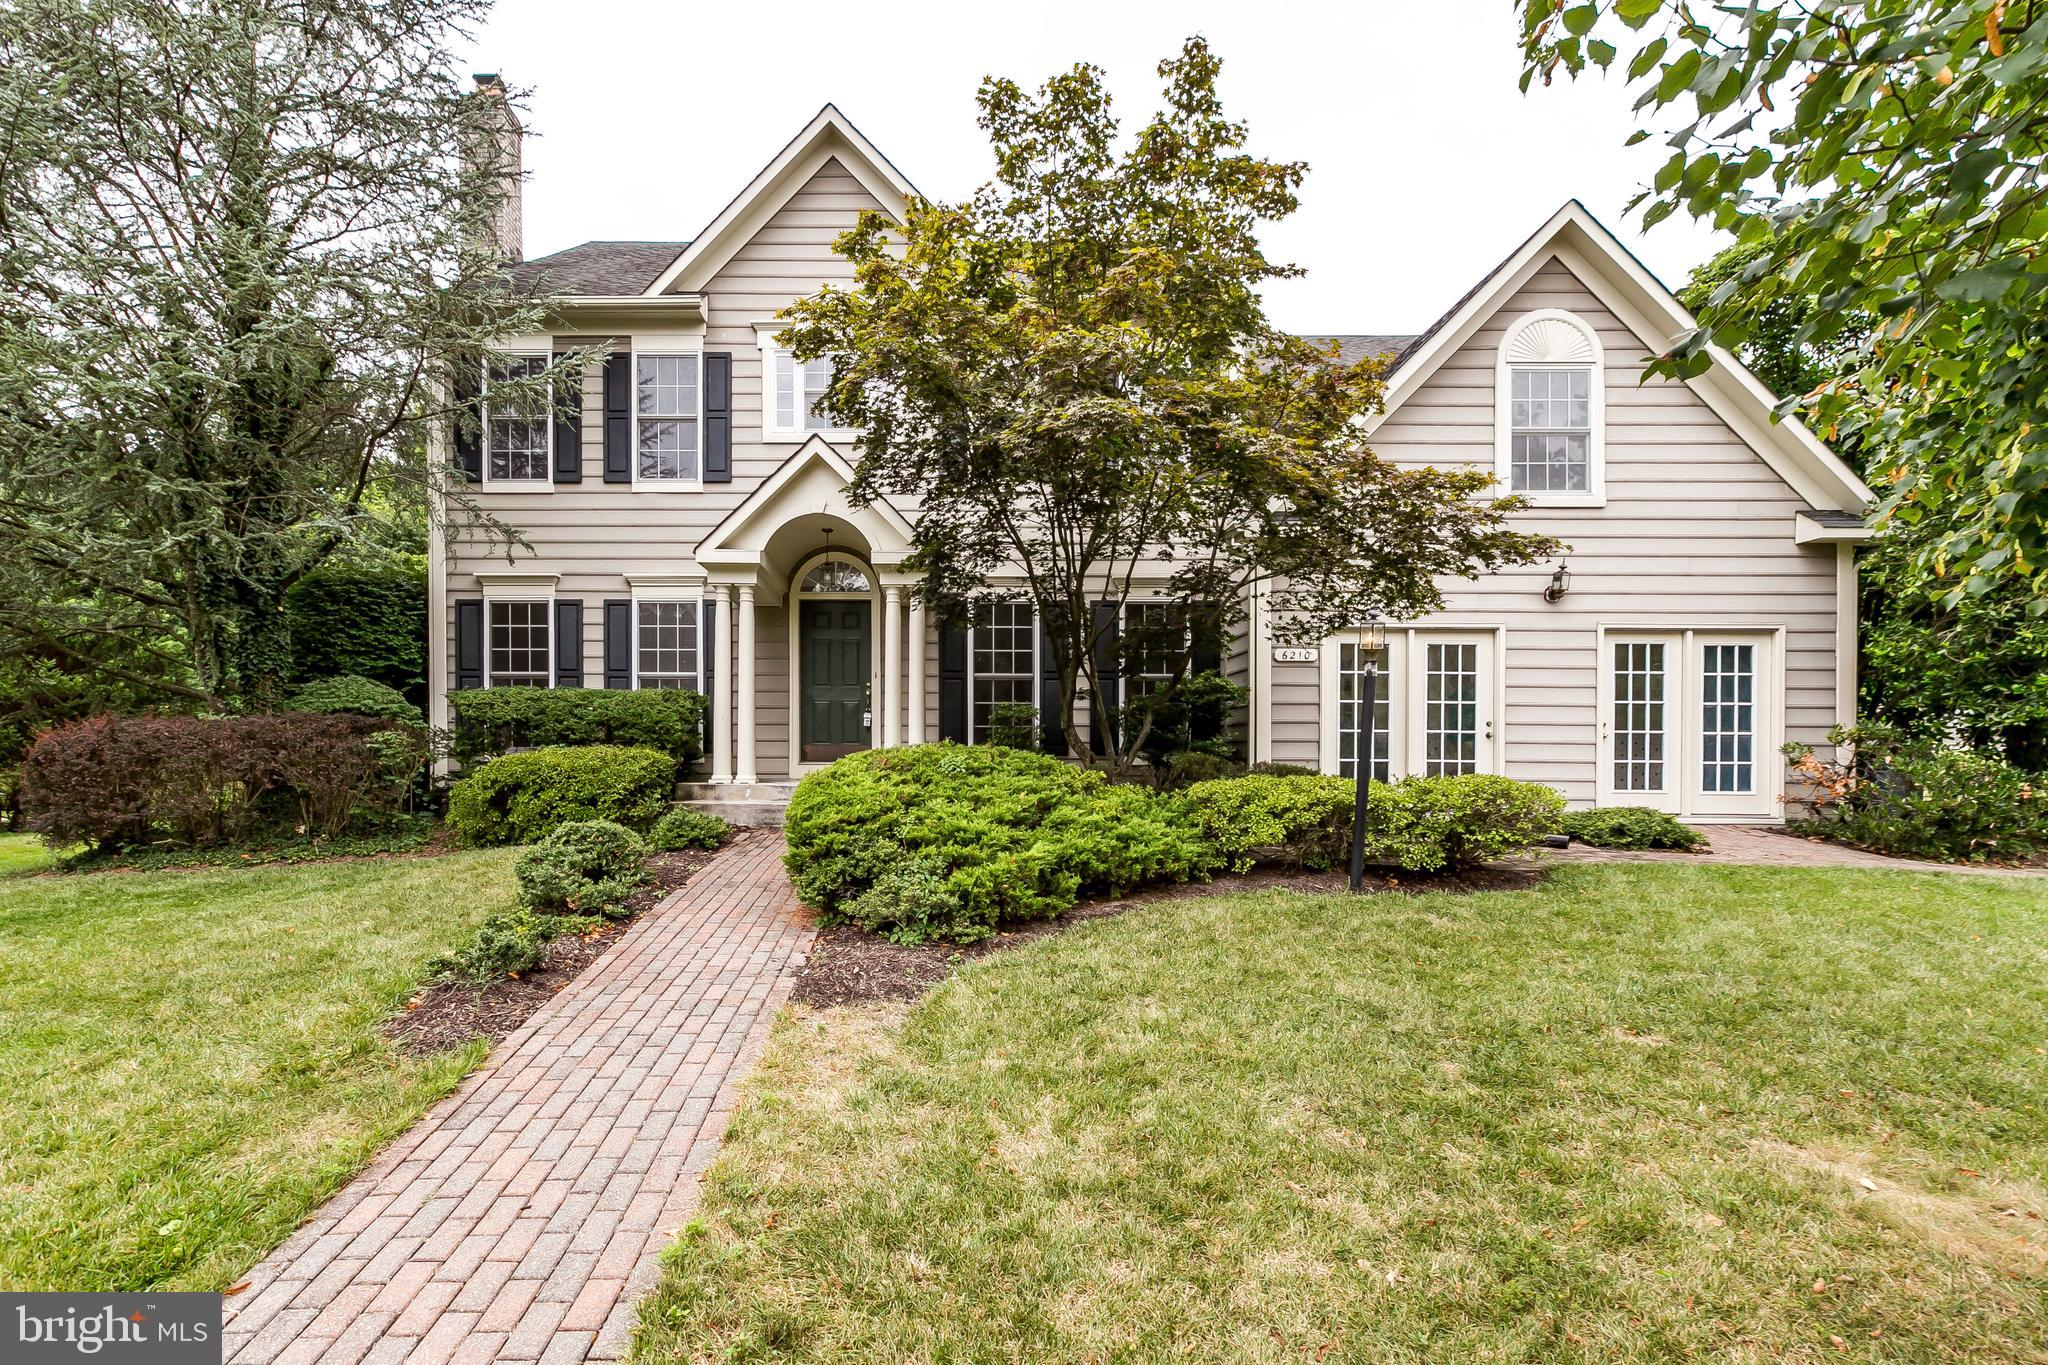 6210 SUMMER HOME TERRACE, ELKRIDGE, MD 21075